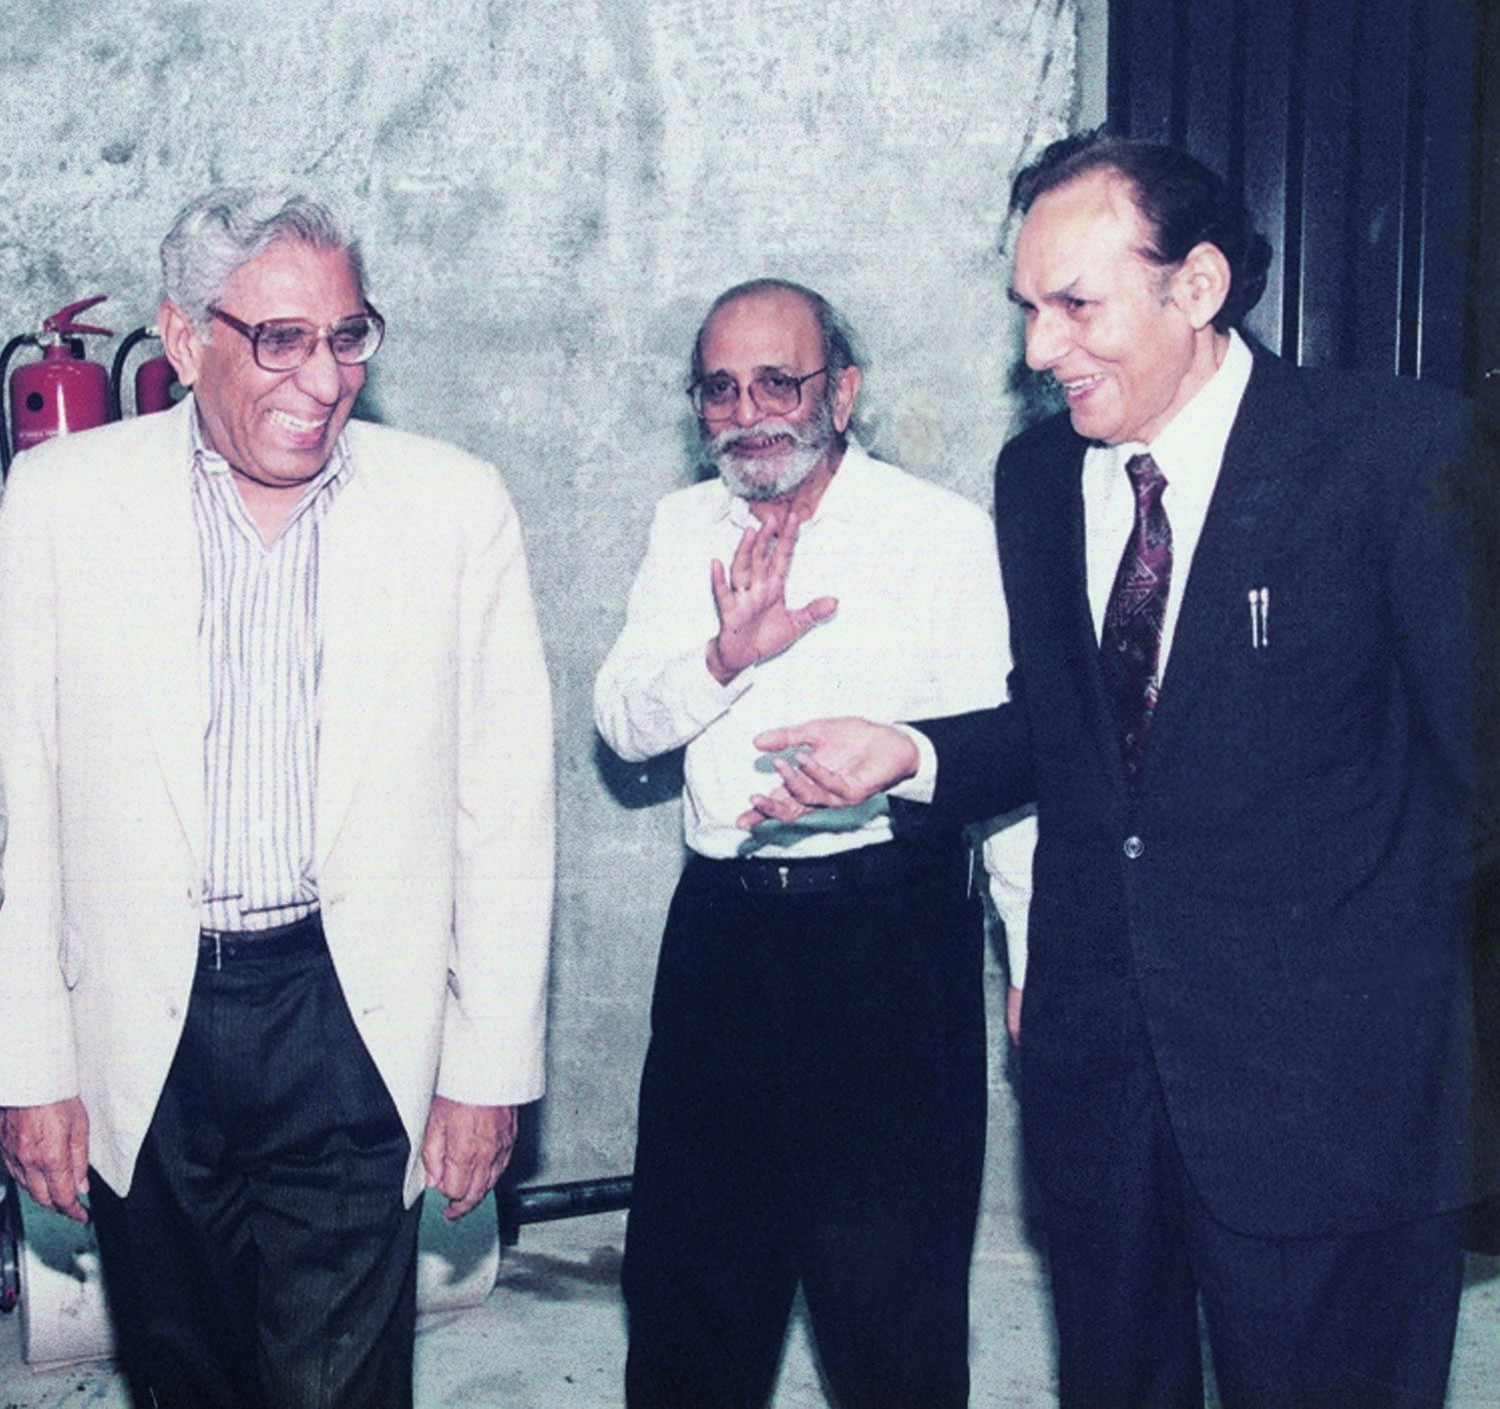 AT the launching ceremony of Dawn's Islamabad Edition in April 2001, Ahmad Ali Khan is seen sharing a light moment with his long-time colleagues Saleem Asmi (centre), who was Dawn's Editor at the time, and Muhammad Ziauddin (left), the Resident Editor at Islamabad. | Photo: Ahmad Ali Khan Family Archives